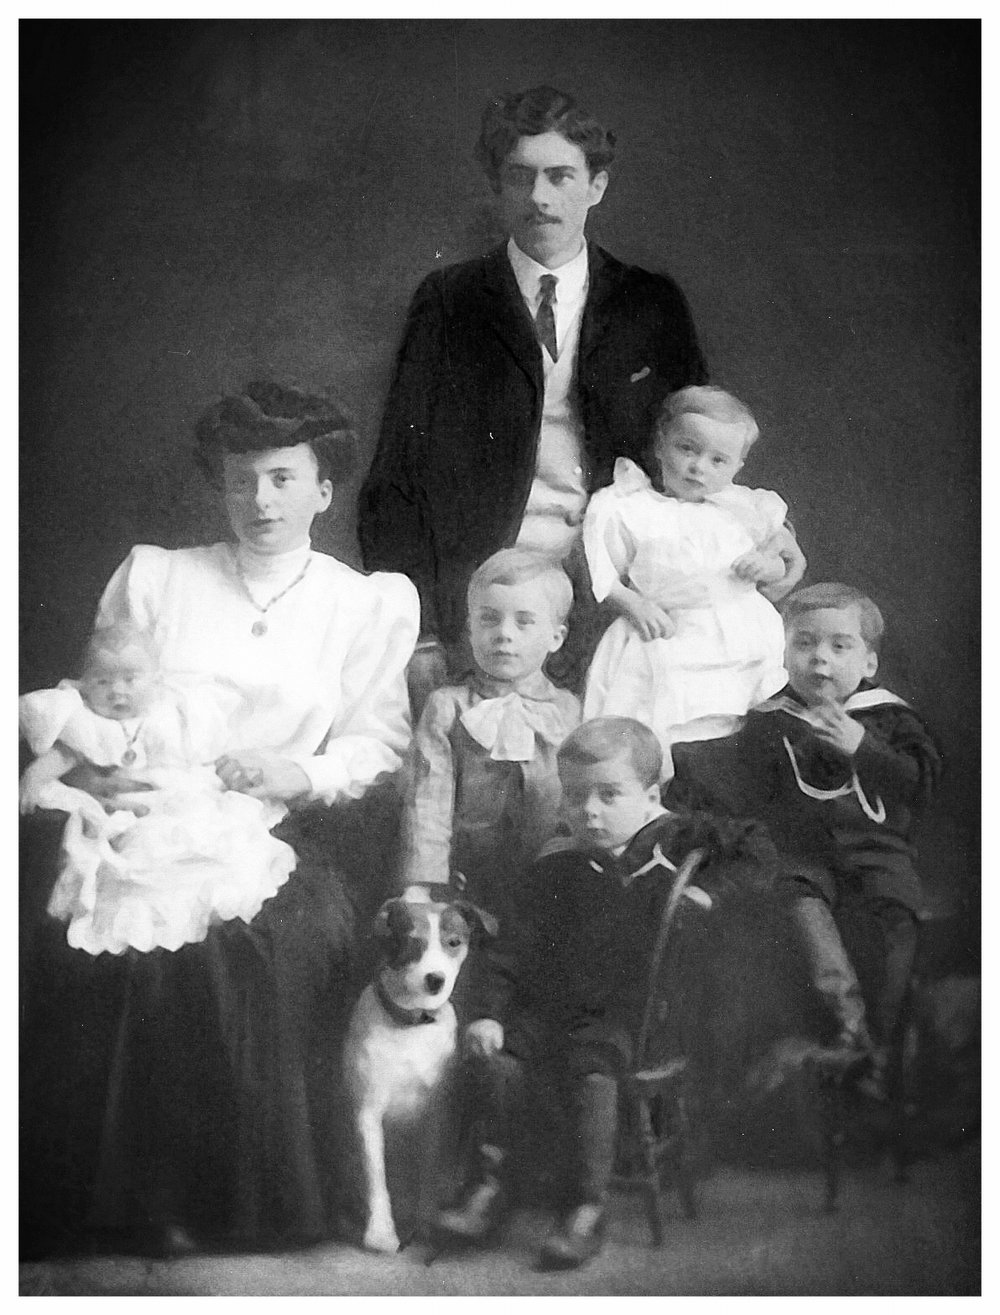 From Left to Right; Wally, Ada, George (Standing), Monte (Standing, middle), Dorothy, and the twins, Ernie (seated, middle front) Percy, and the family dog.